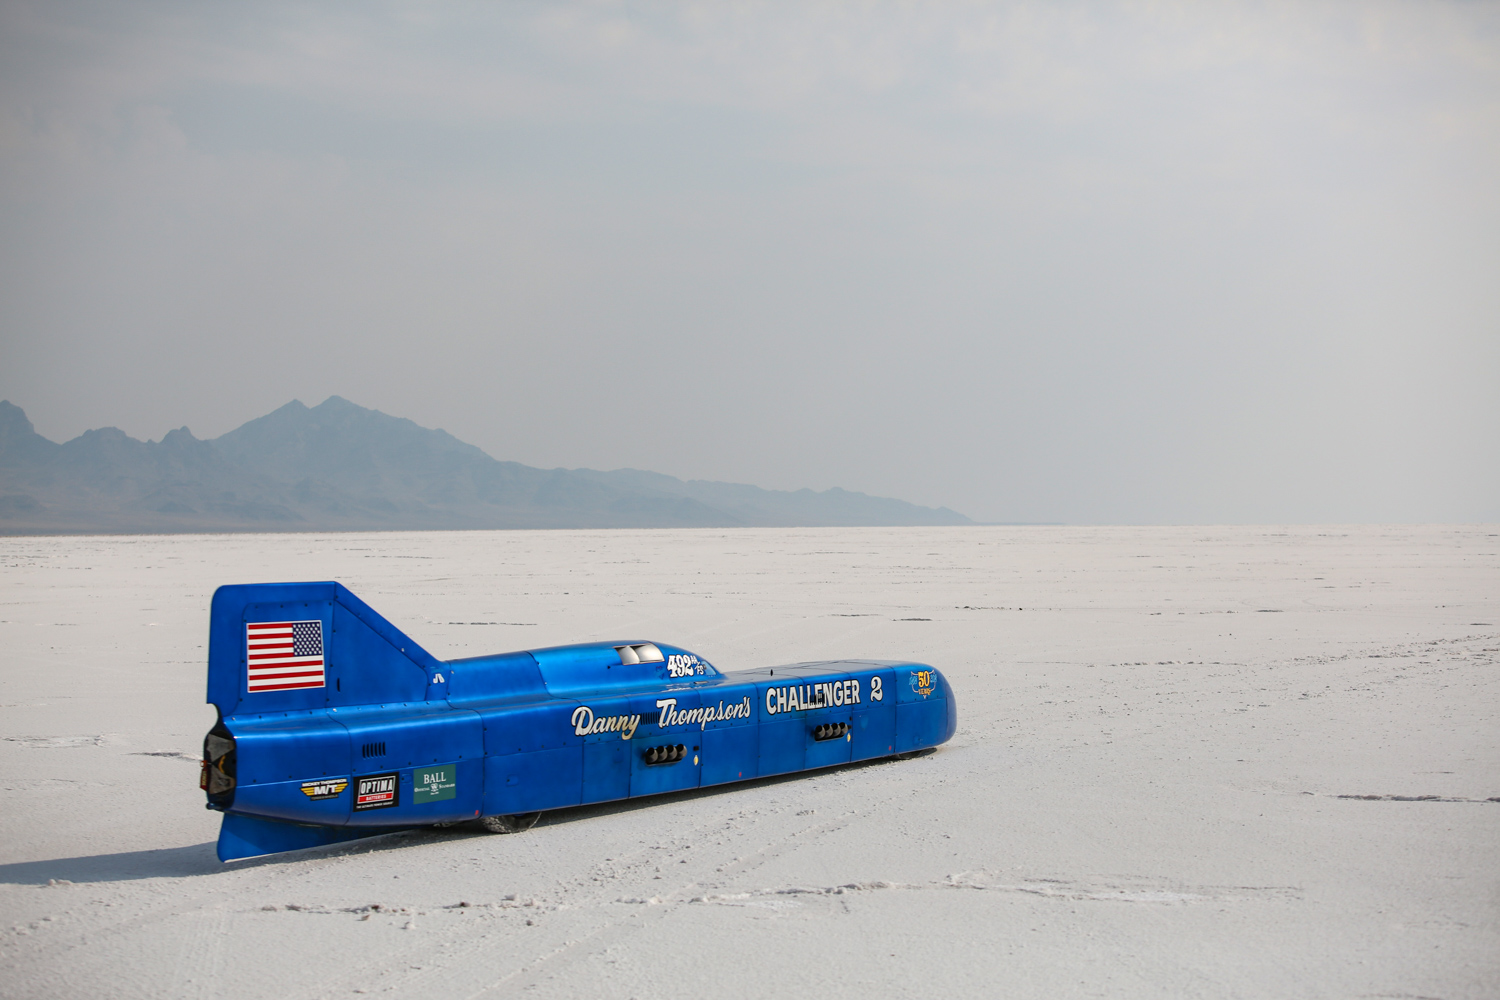 Danny Thompson and the record-breaking Challenger 2 streamliner retire thumbnail